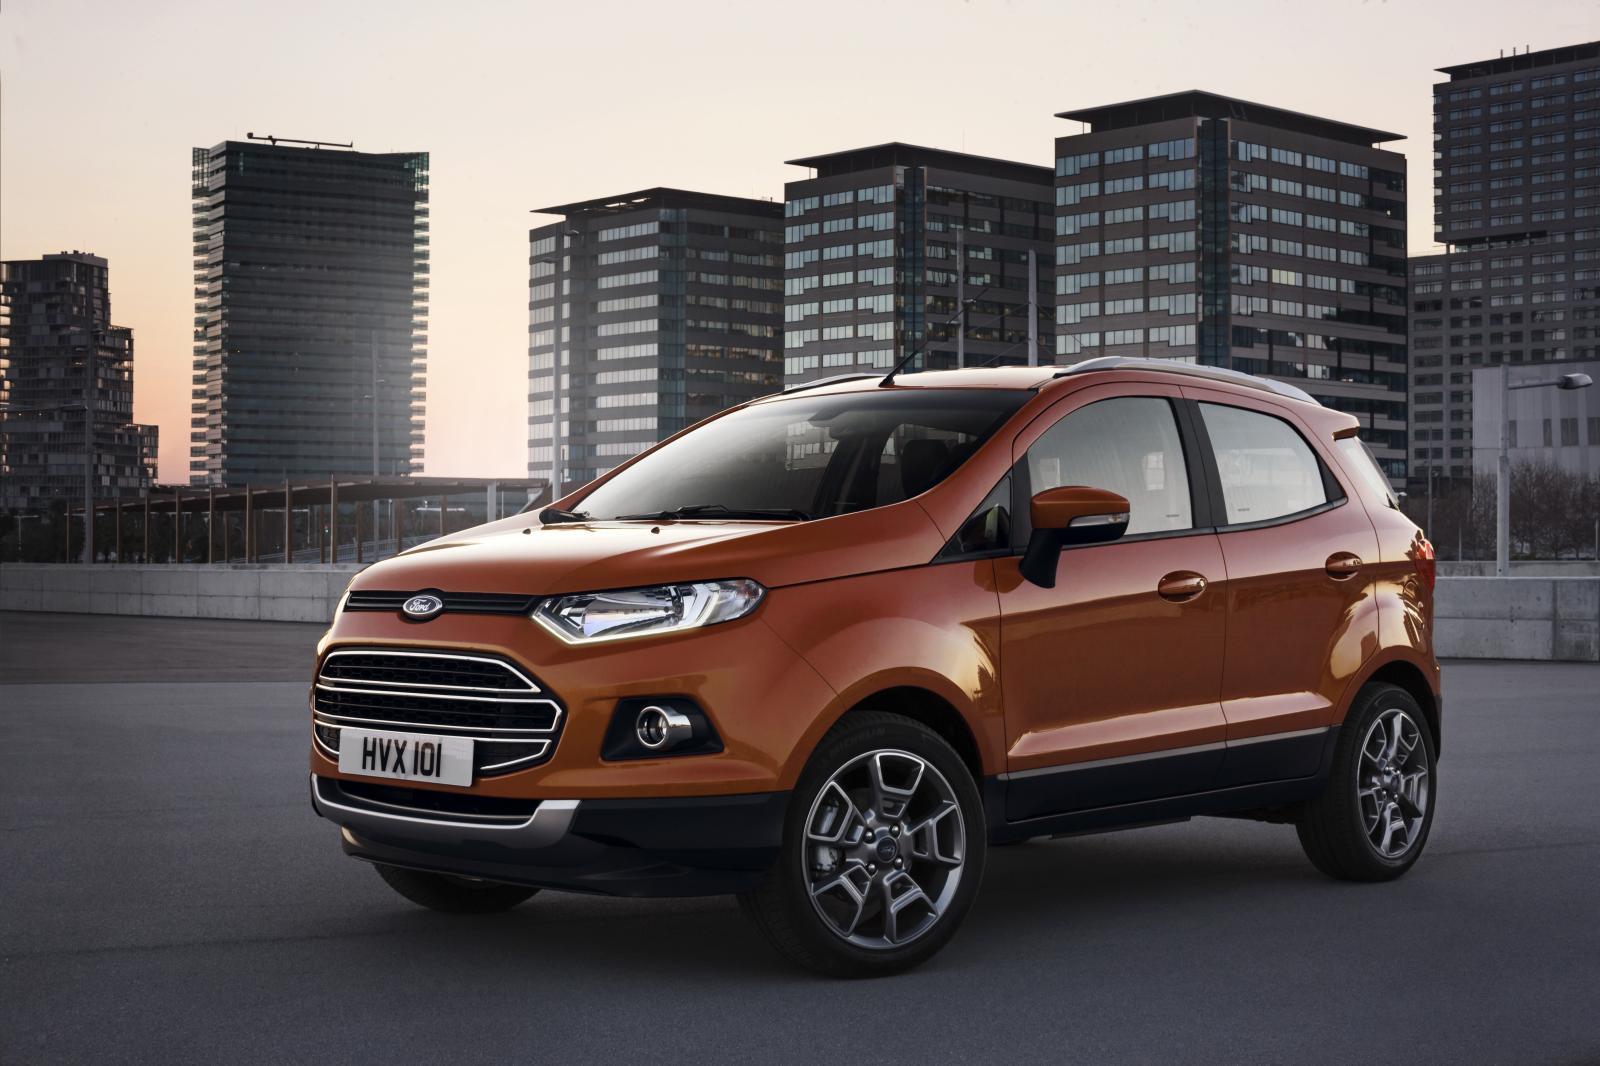 ecosport-eu-version-2013